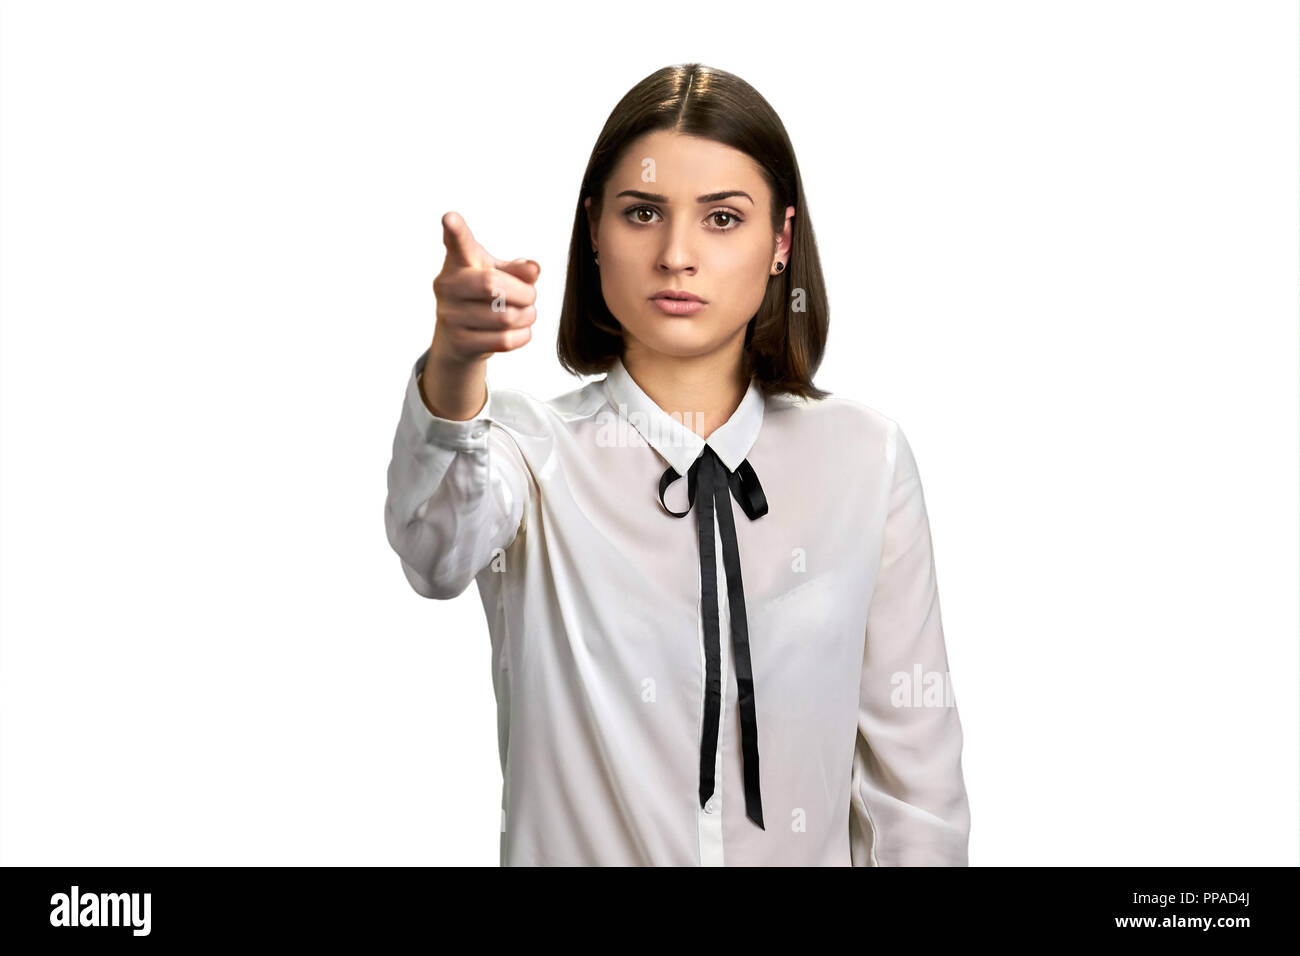 Confident young woman pointing forward. - Stock Image